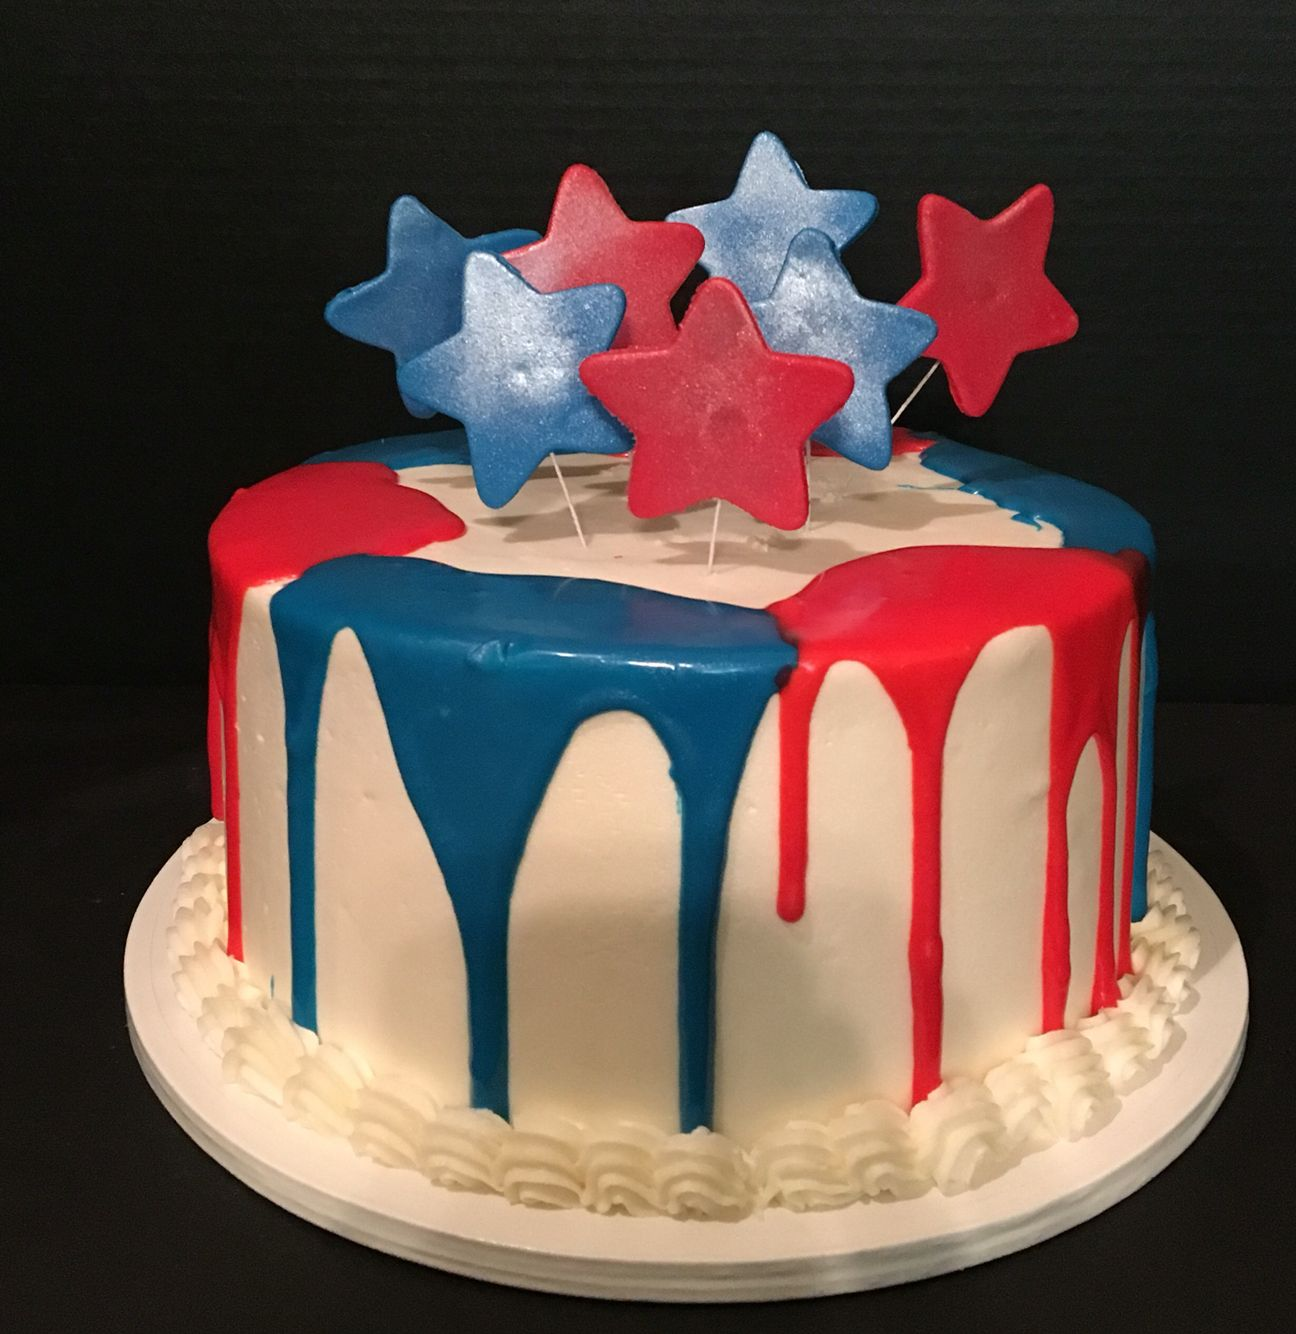 Tremendous Red White And Blue Drip Cake With Images Blue Birthday Cakes Funny Birthday Cards Online Alyptdamsfinfo